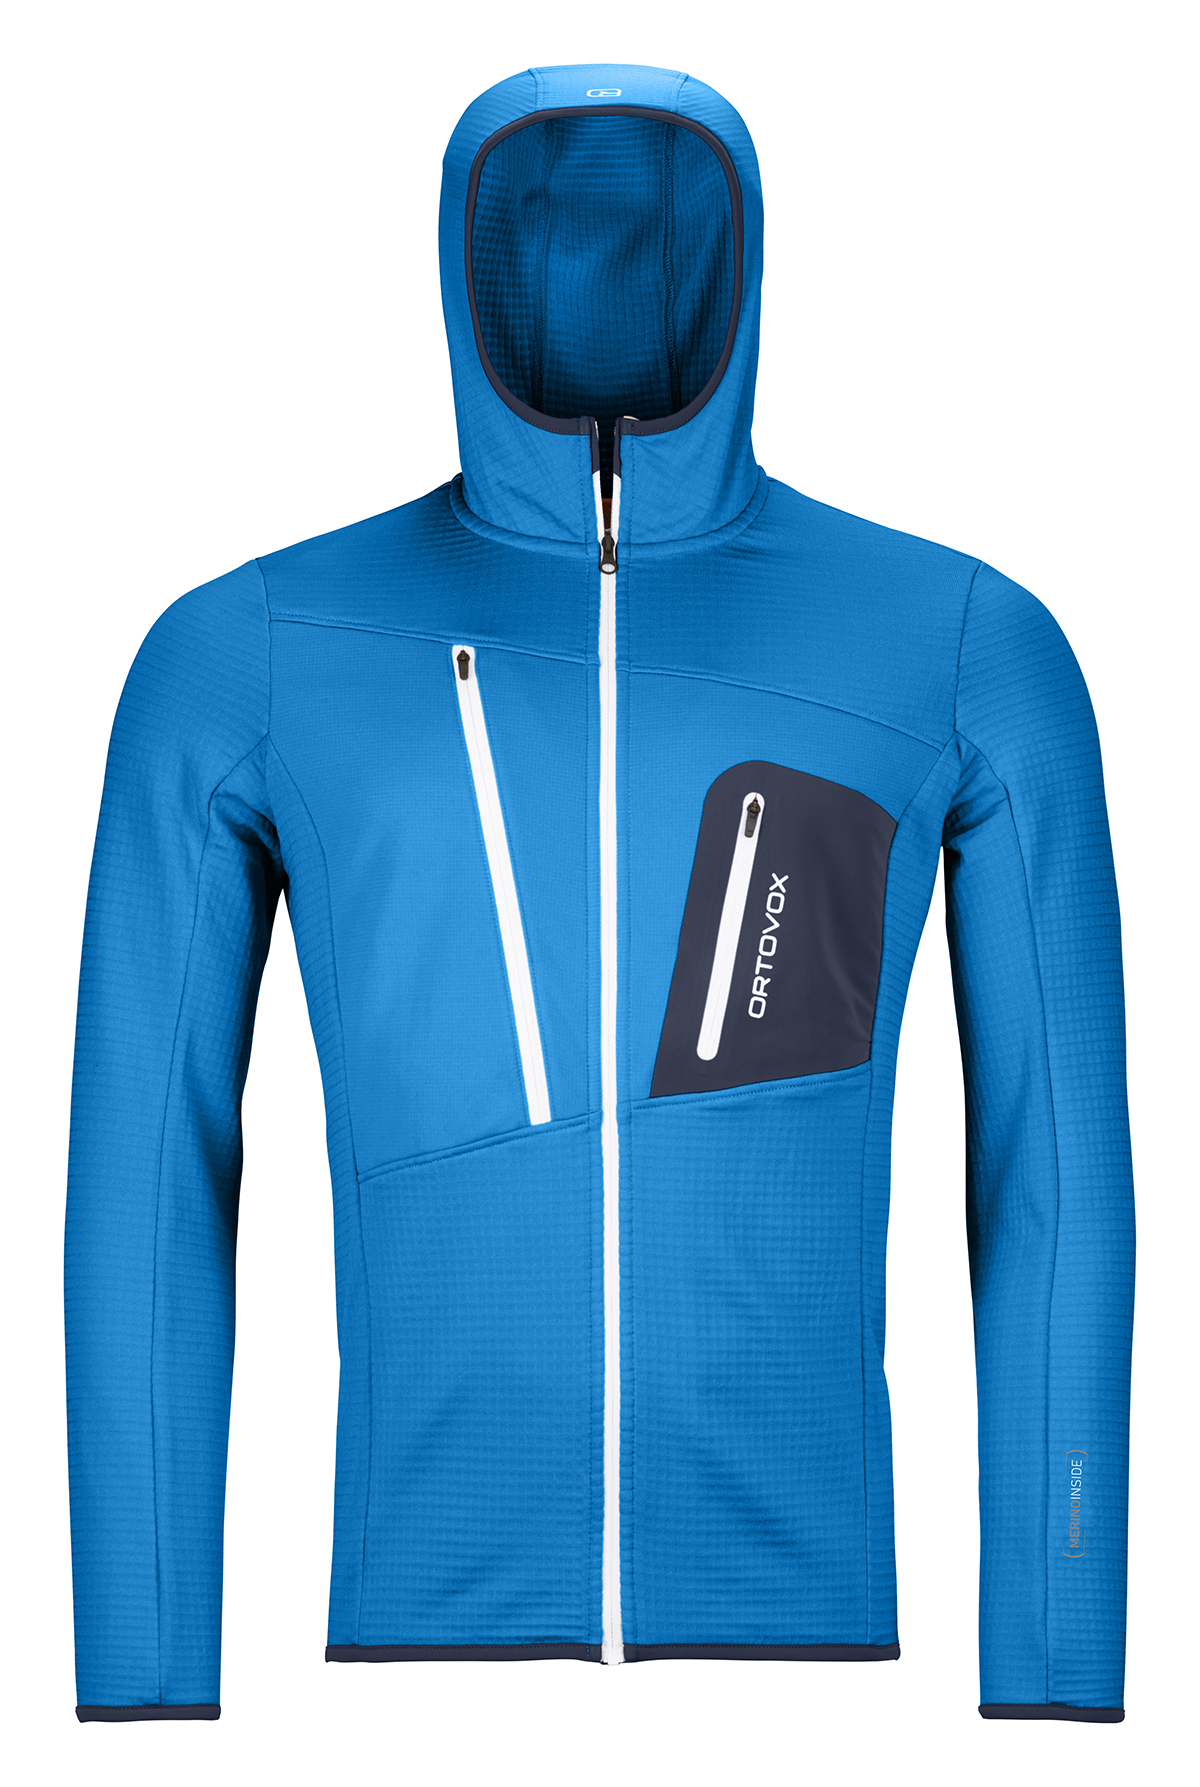 Fleece Ortovox Fleece Grid Hoody Safety Blue